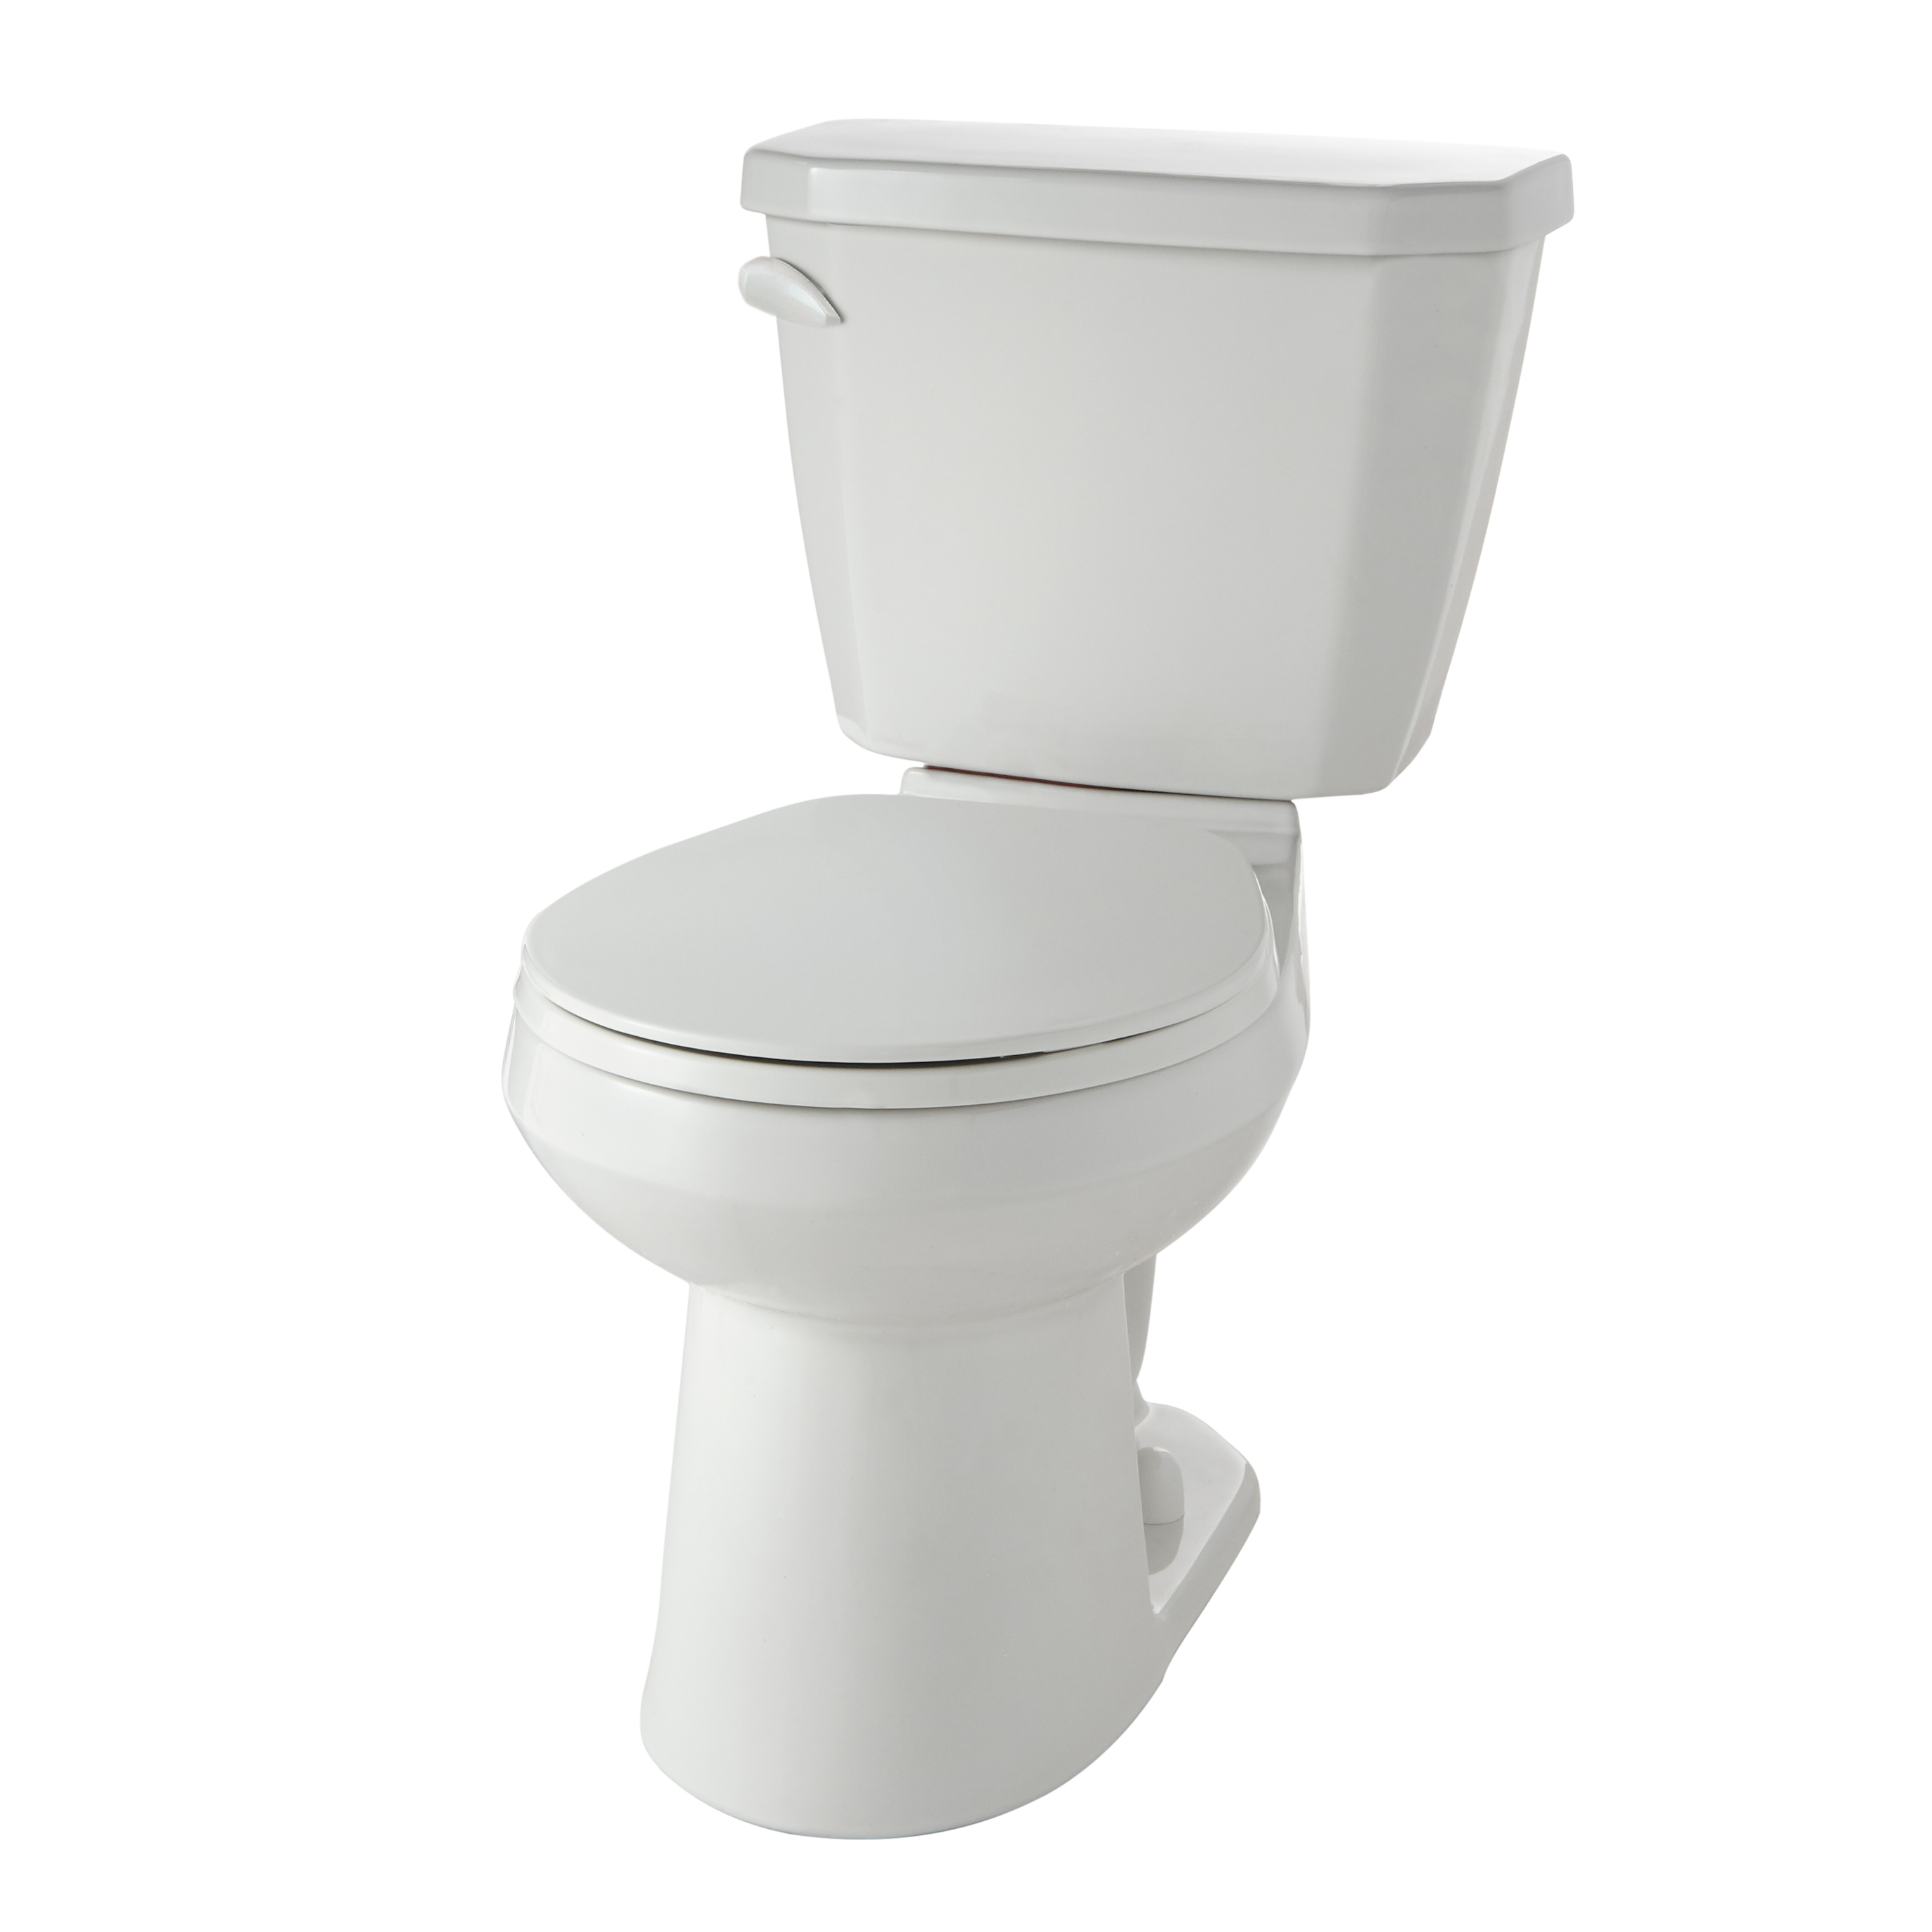 Viper 1 0 Gpf 12 Rough In Two Piece Round Front Toilet Gerber Plumbing